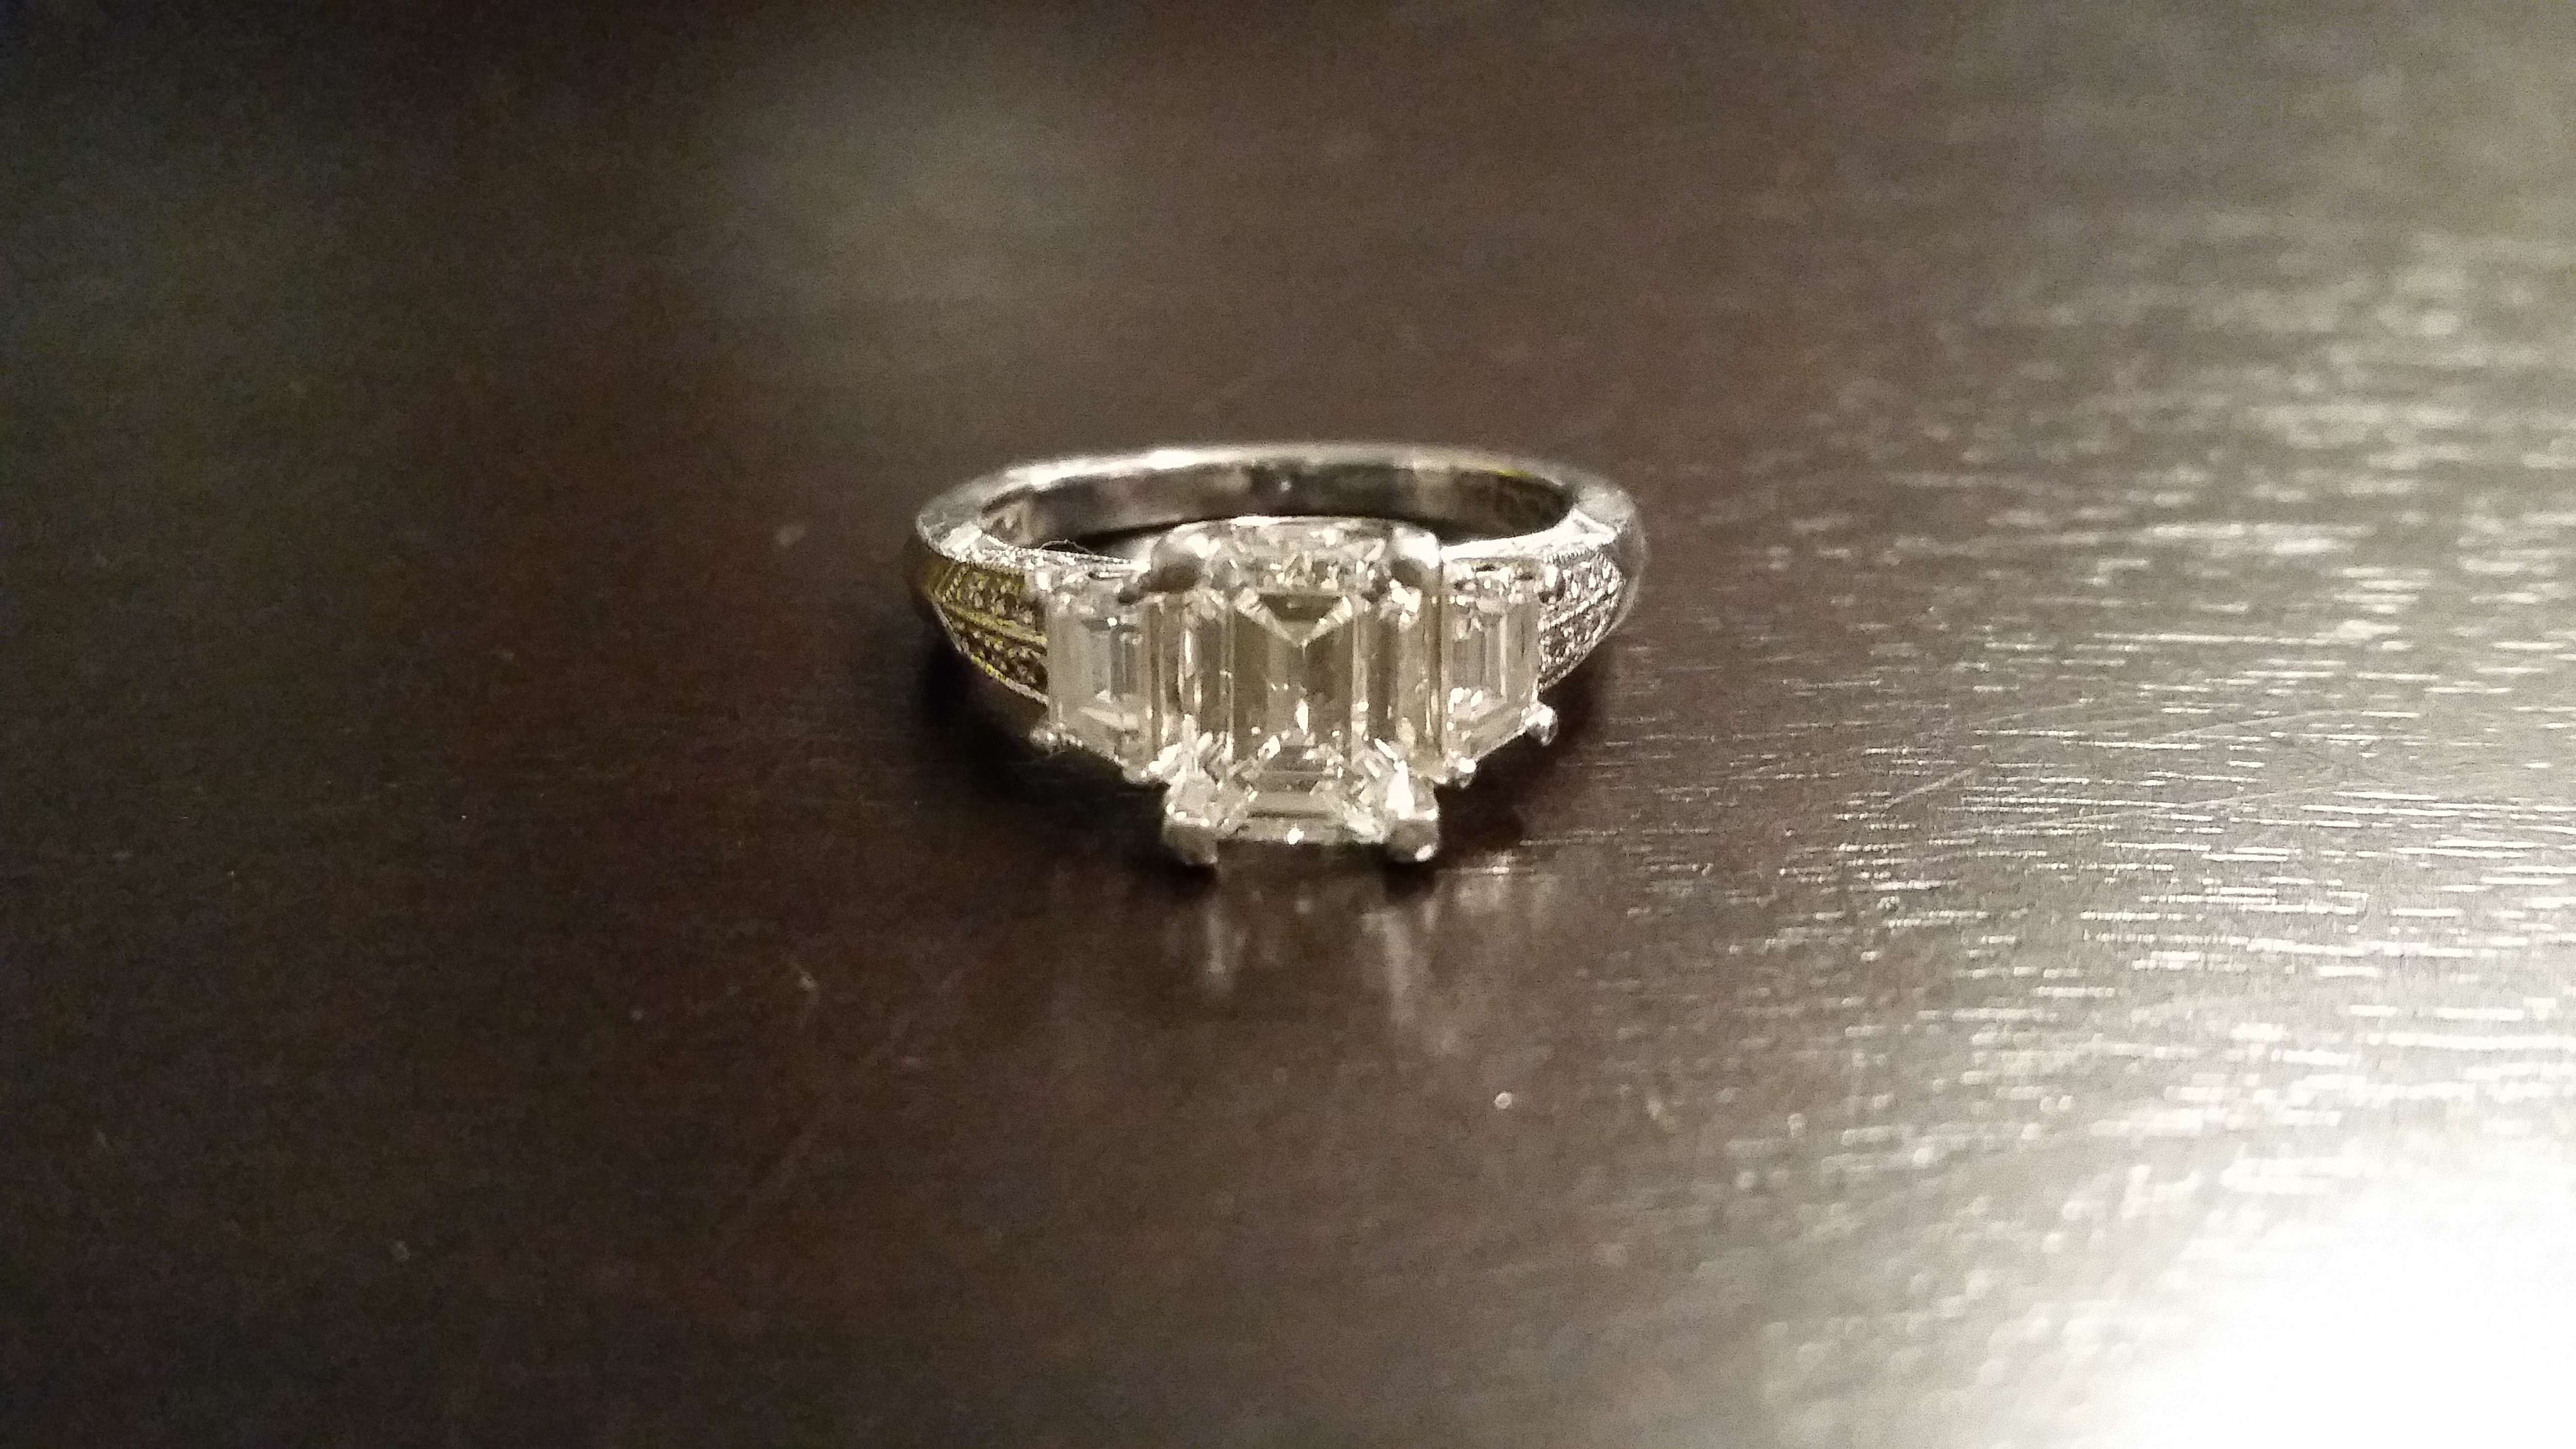 Emerald Cut Tacori Engagement Ring 1 3ct Center Stone I Do Now I Don T